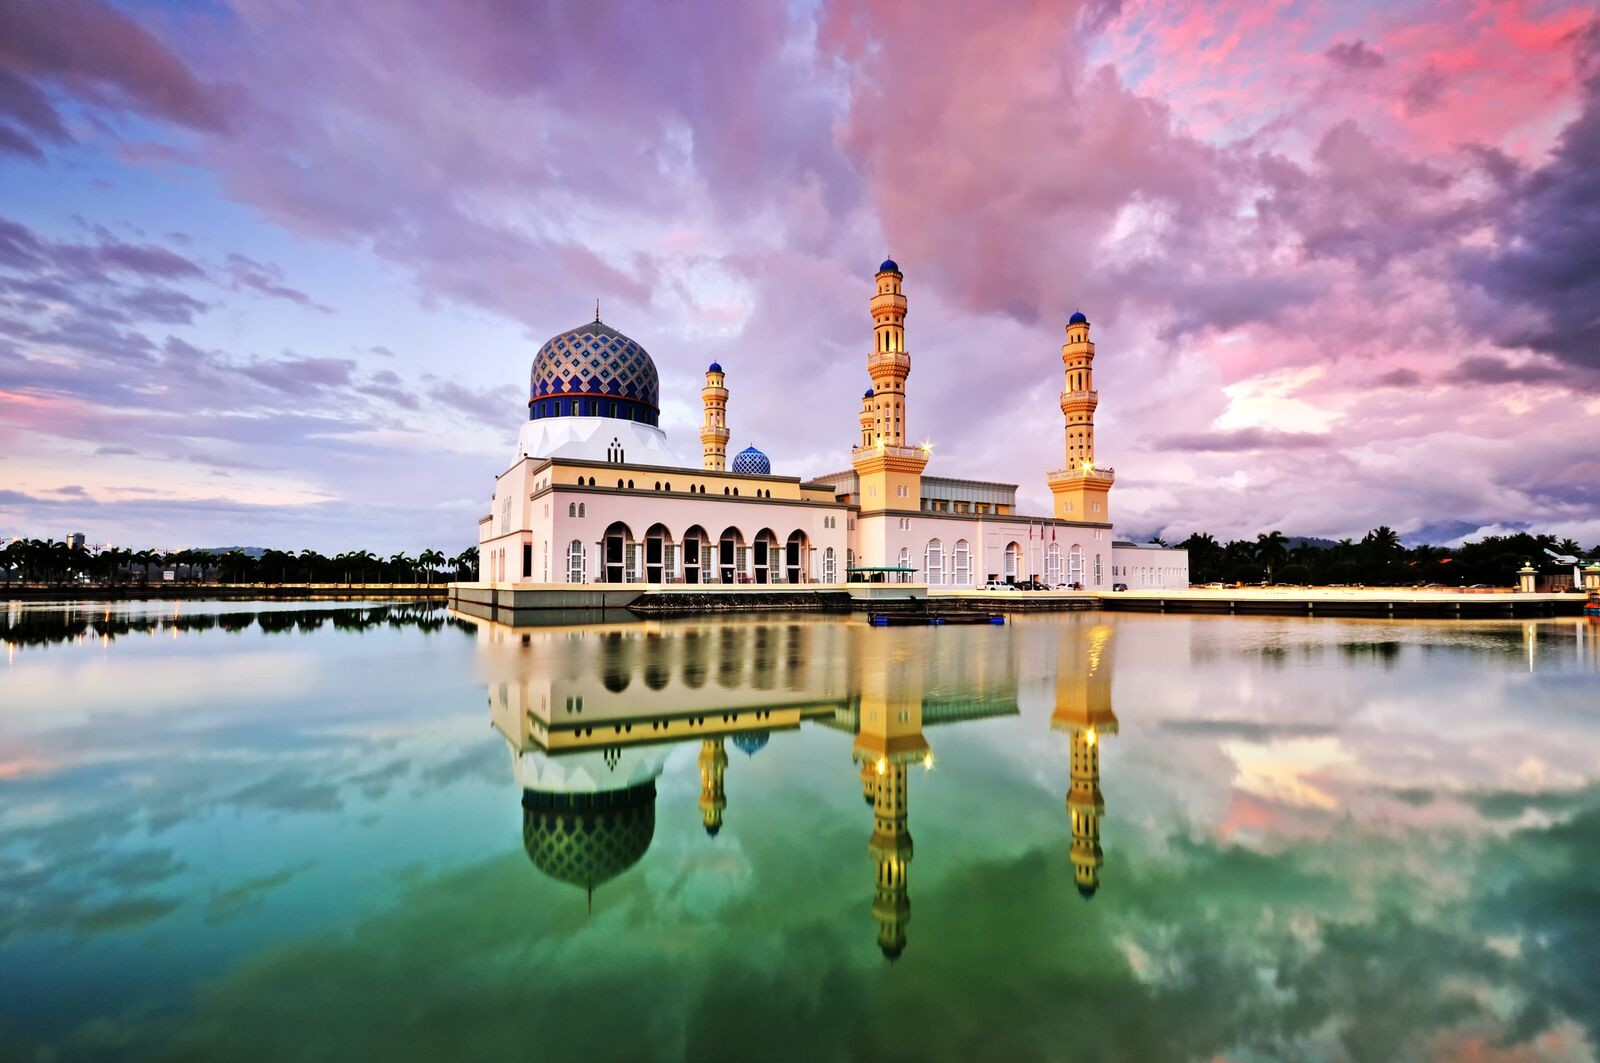 Mosque Farview Sunset in Kota Kinabalu, Malaysia, included in tours offered by Asia Vacation Group